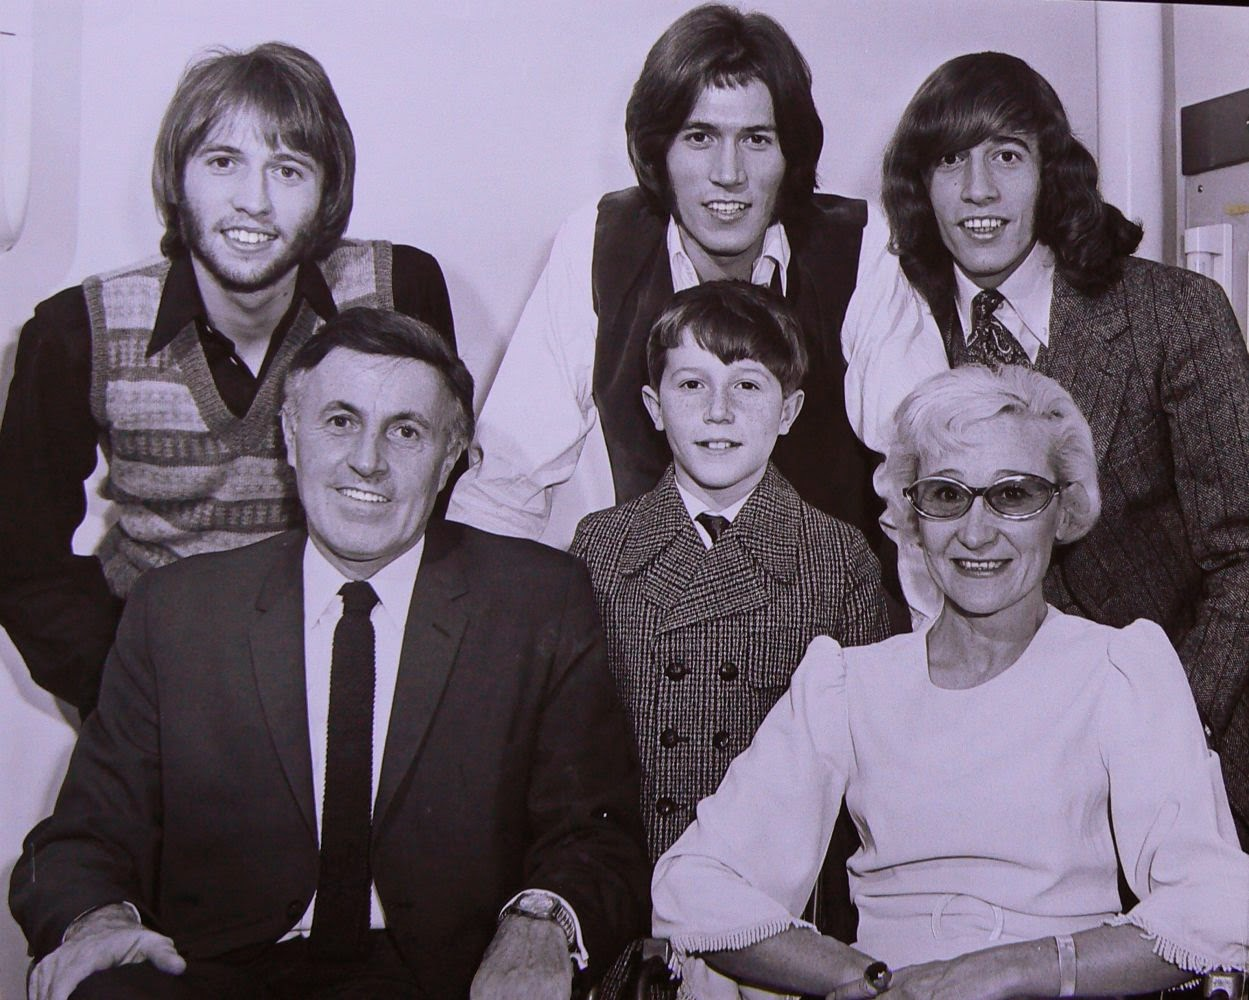 A photo of the Bee Gees (back row): Maurice, Barry and Robin Gibb, along with the rest of their family (front): Hugh, Andy and Barbara Gibb. 5 of 23Bee Gees: With age comes interesting hair. A photo of the Bee Gees (back row): Maurice, Barry and Robin Gibb, along with the rest of their family (front): Hugh, Andy and Barbara Gibb. http://www.jinglejanglejungle.net/2015/01/bgs.html